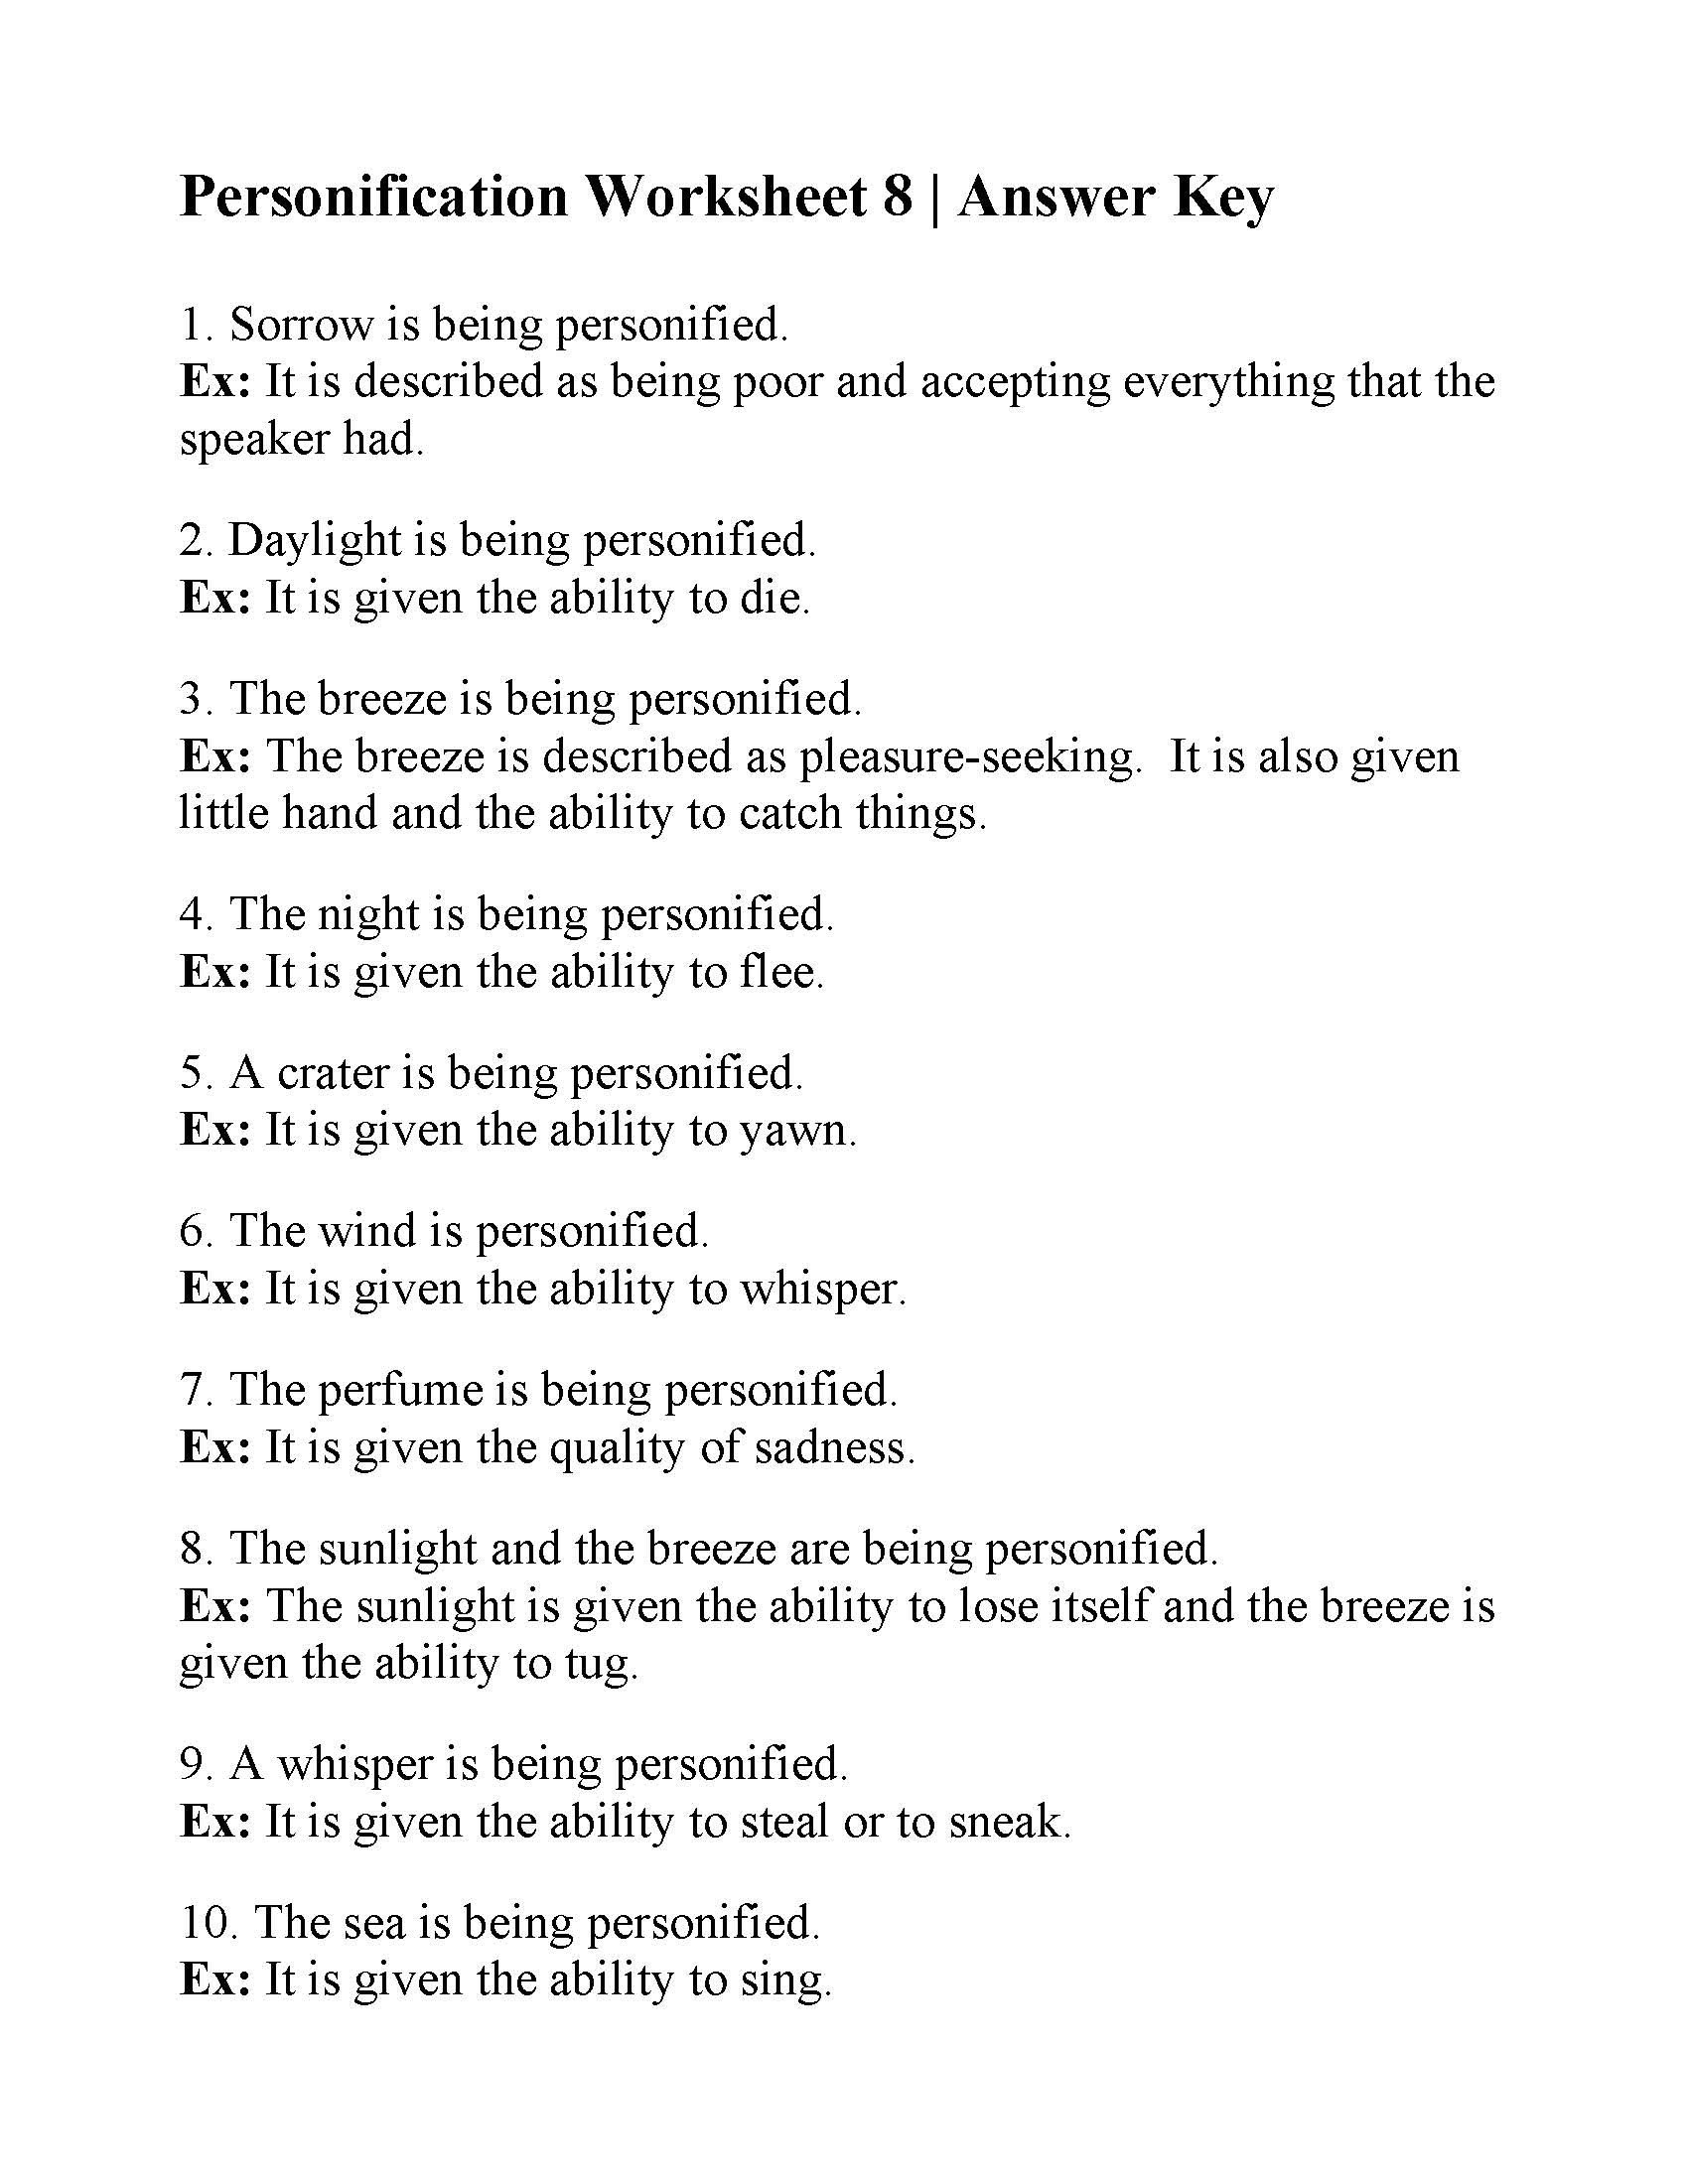 Personification Worksheets 6th Grade Personification Worksheet Answers Worksheets Math Kumon